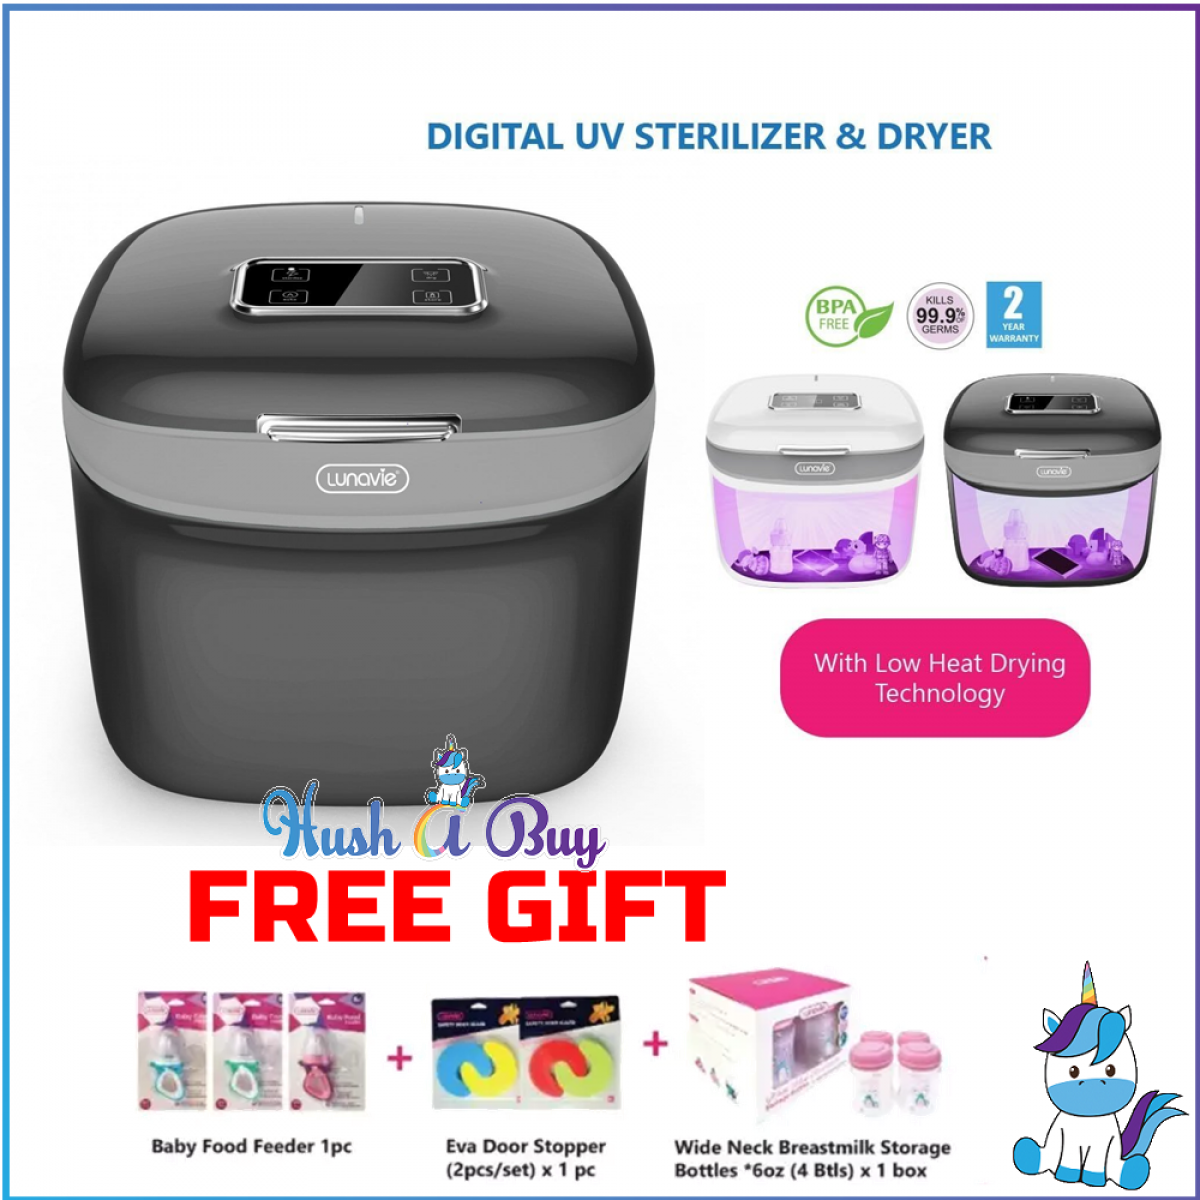 Lunavie Digital UV Sterilizer & Dryer (2 Years Warranty) with FREE GIFT (While Stock Last)